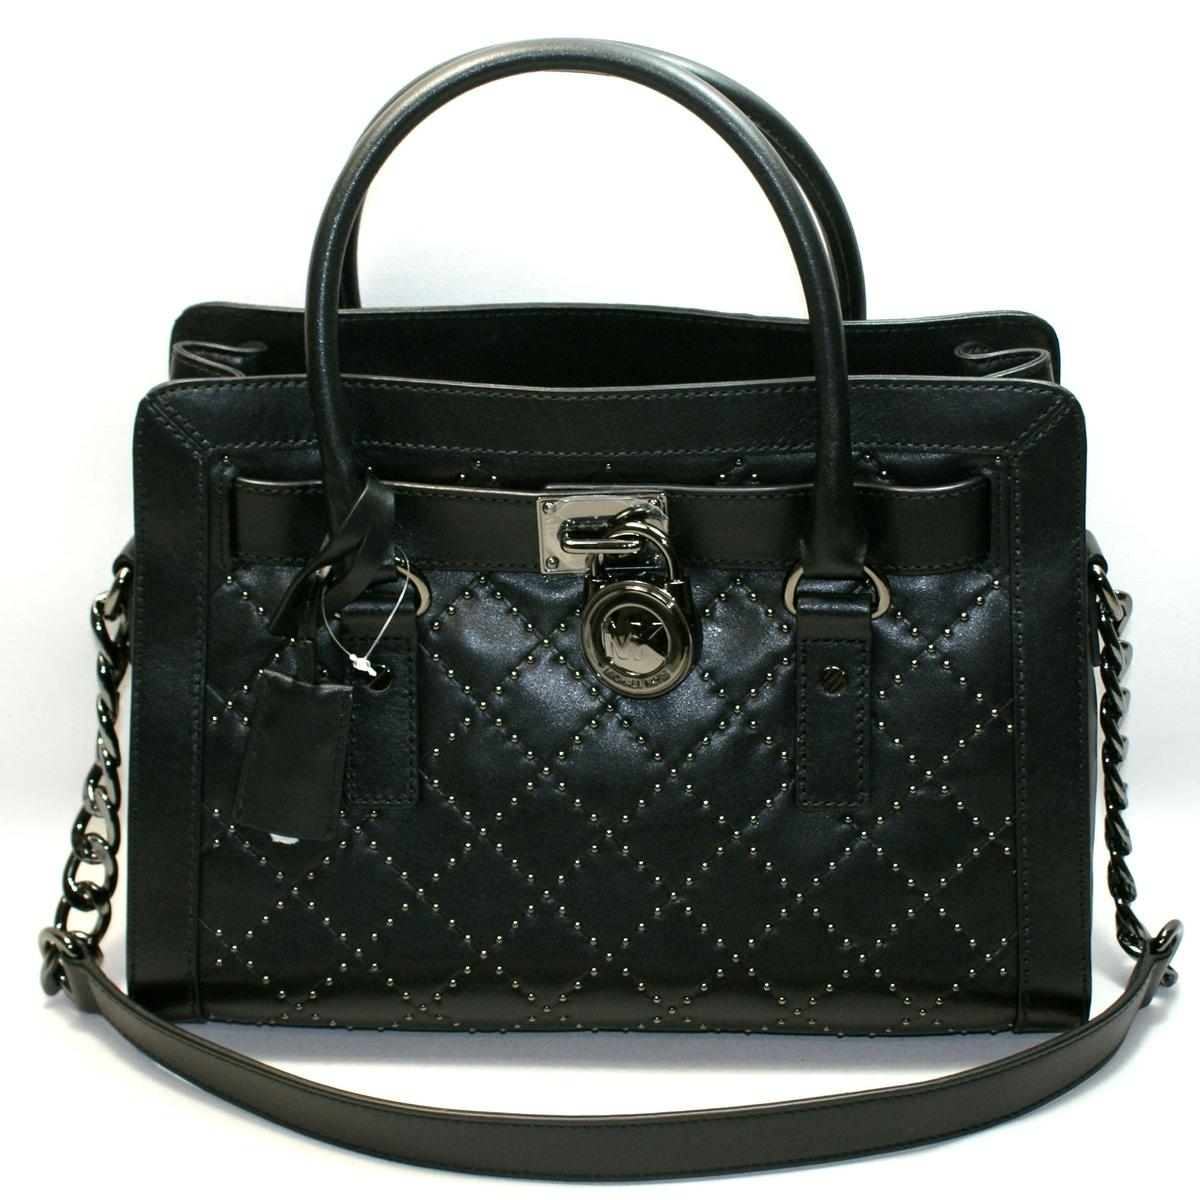 d56ca0e2e53d3f Home · Michael Kors · Hamilton Microstud Genuine Leather Quilted East West  Satchel/ Shoulder Bag Black. CLICK THUMBNAIL TO ZOOM. Found In: Handbags